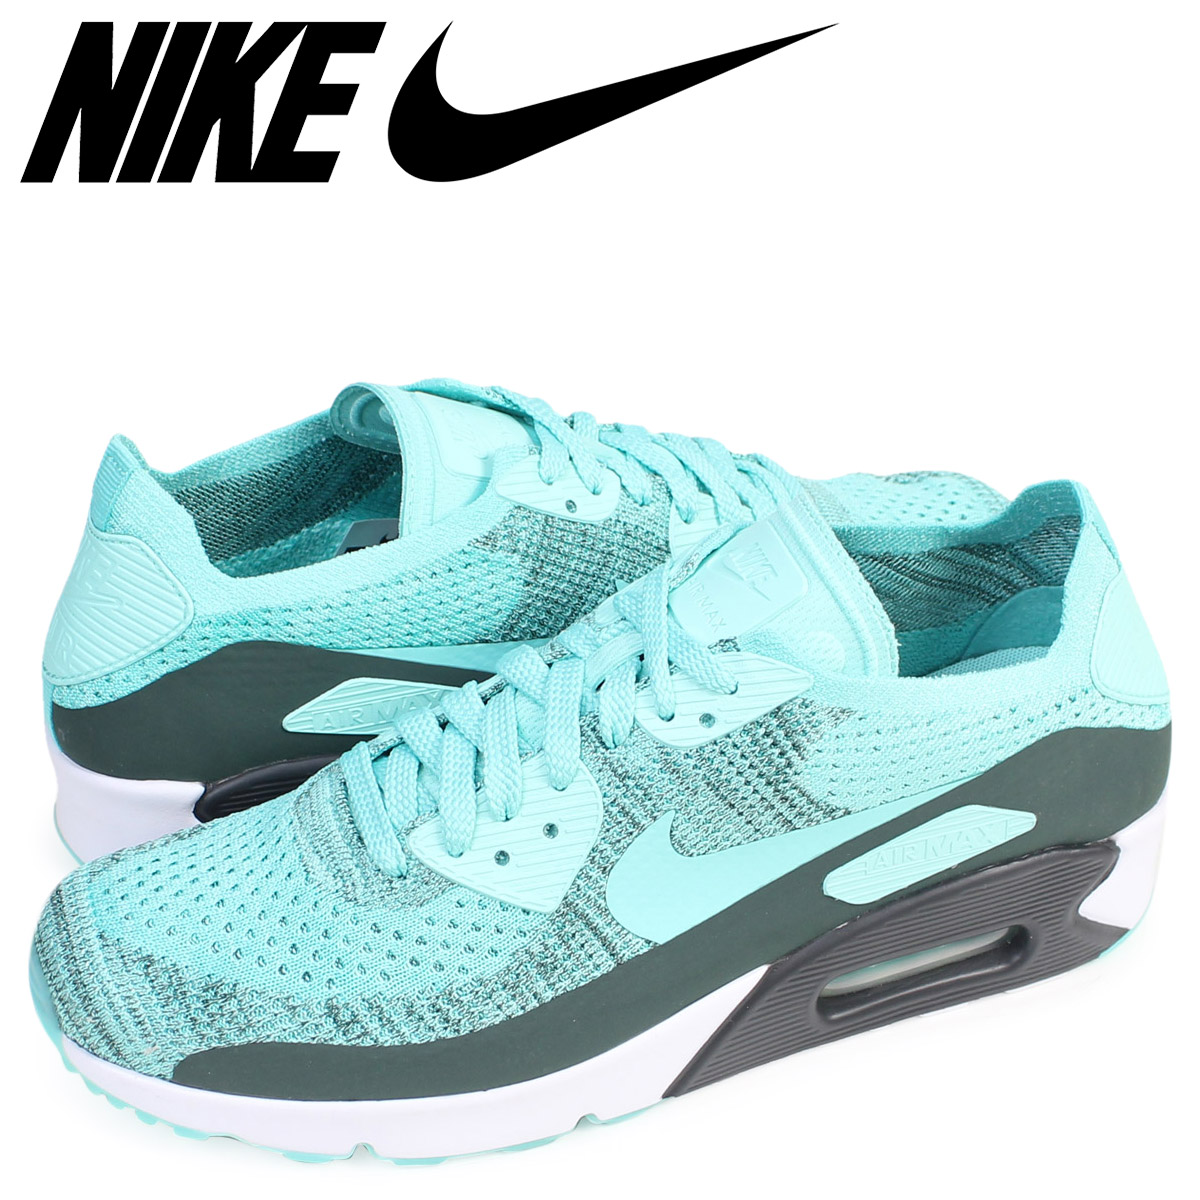 watch 43aac 6a7f6 Nike NIKE Air Max 90 ultra fly knit sneakers AIR MAX 90 ULTRA 2.0 FLYKNIT  875,943-301 men s shoes light blue  7 15 Shinnyu load